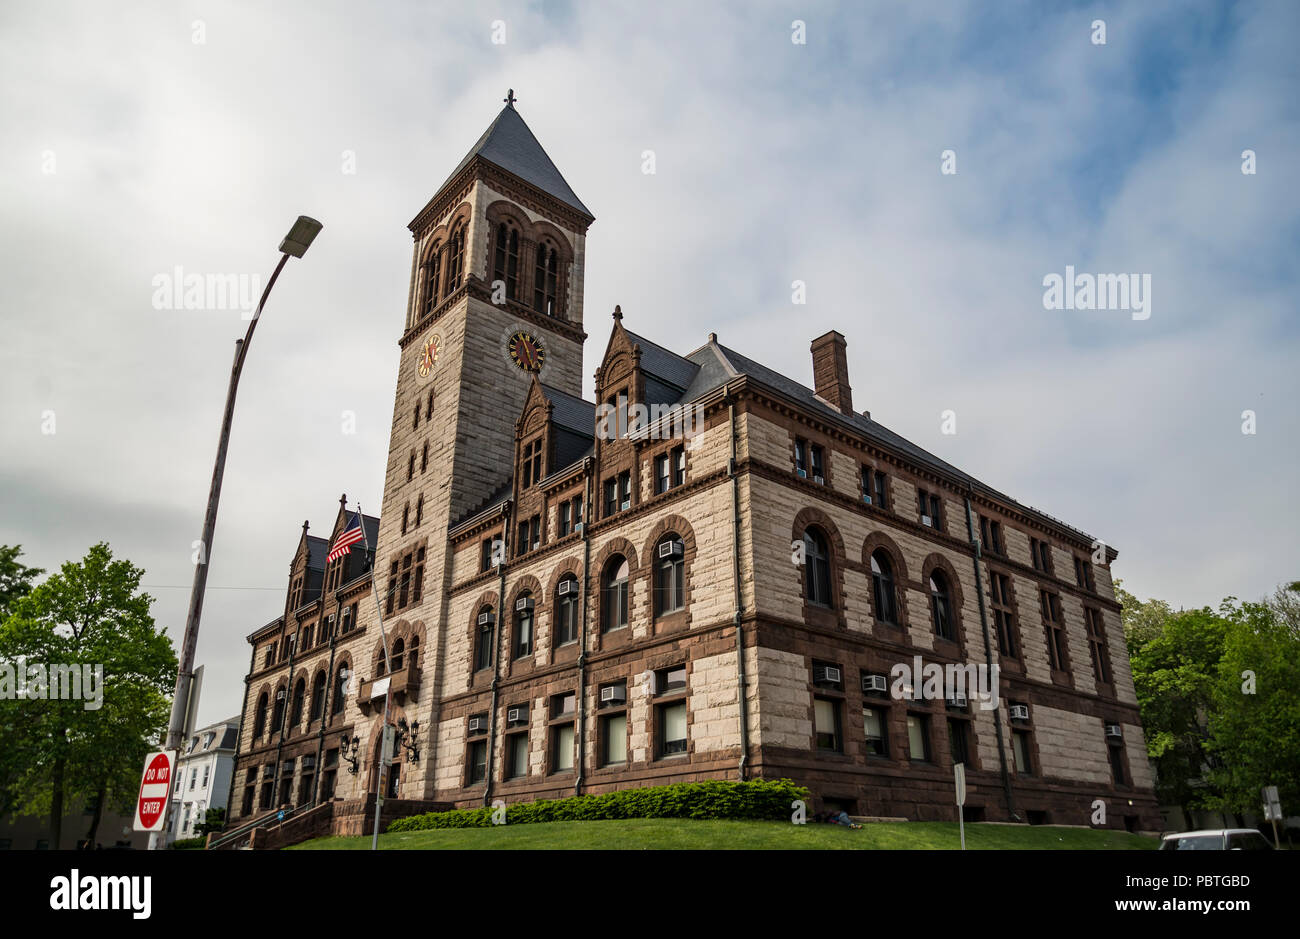 City Hall, at Central Square, in Cambridge, Boston Massachusetts. - Stock Image